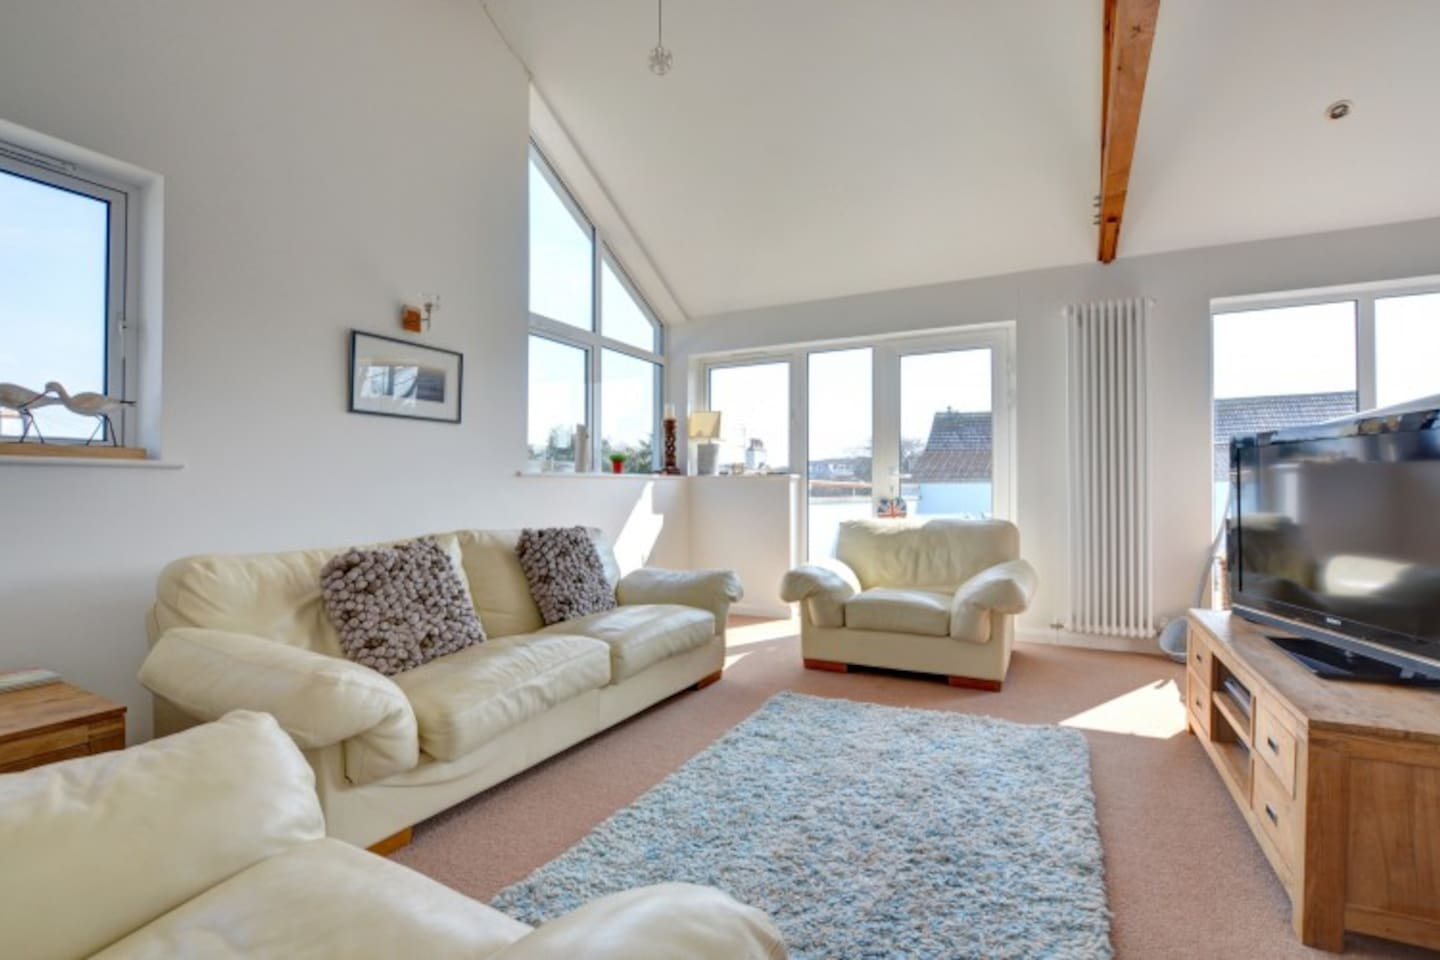 Open plan living, a short stroll from Saundersfoot's harbour and beaches.